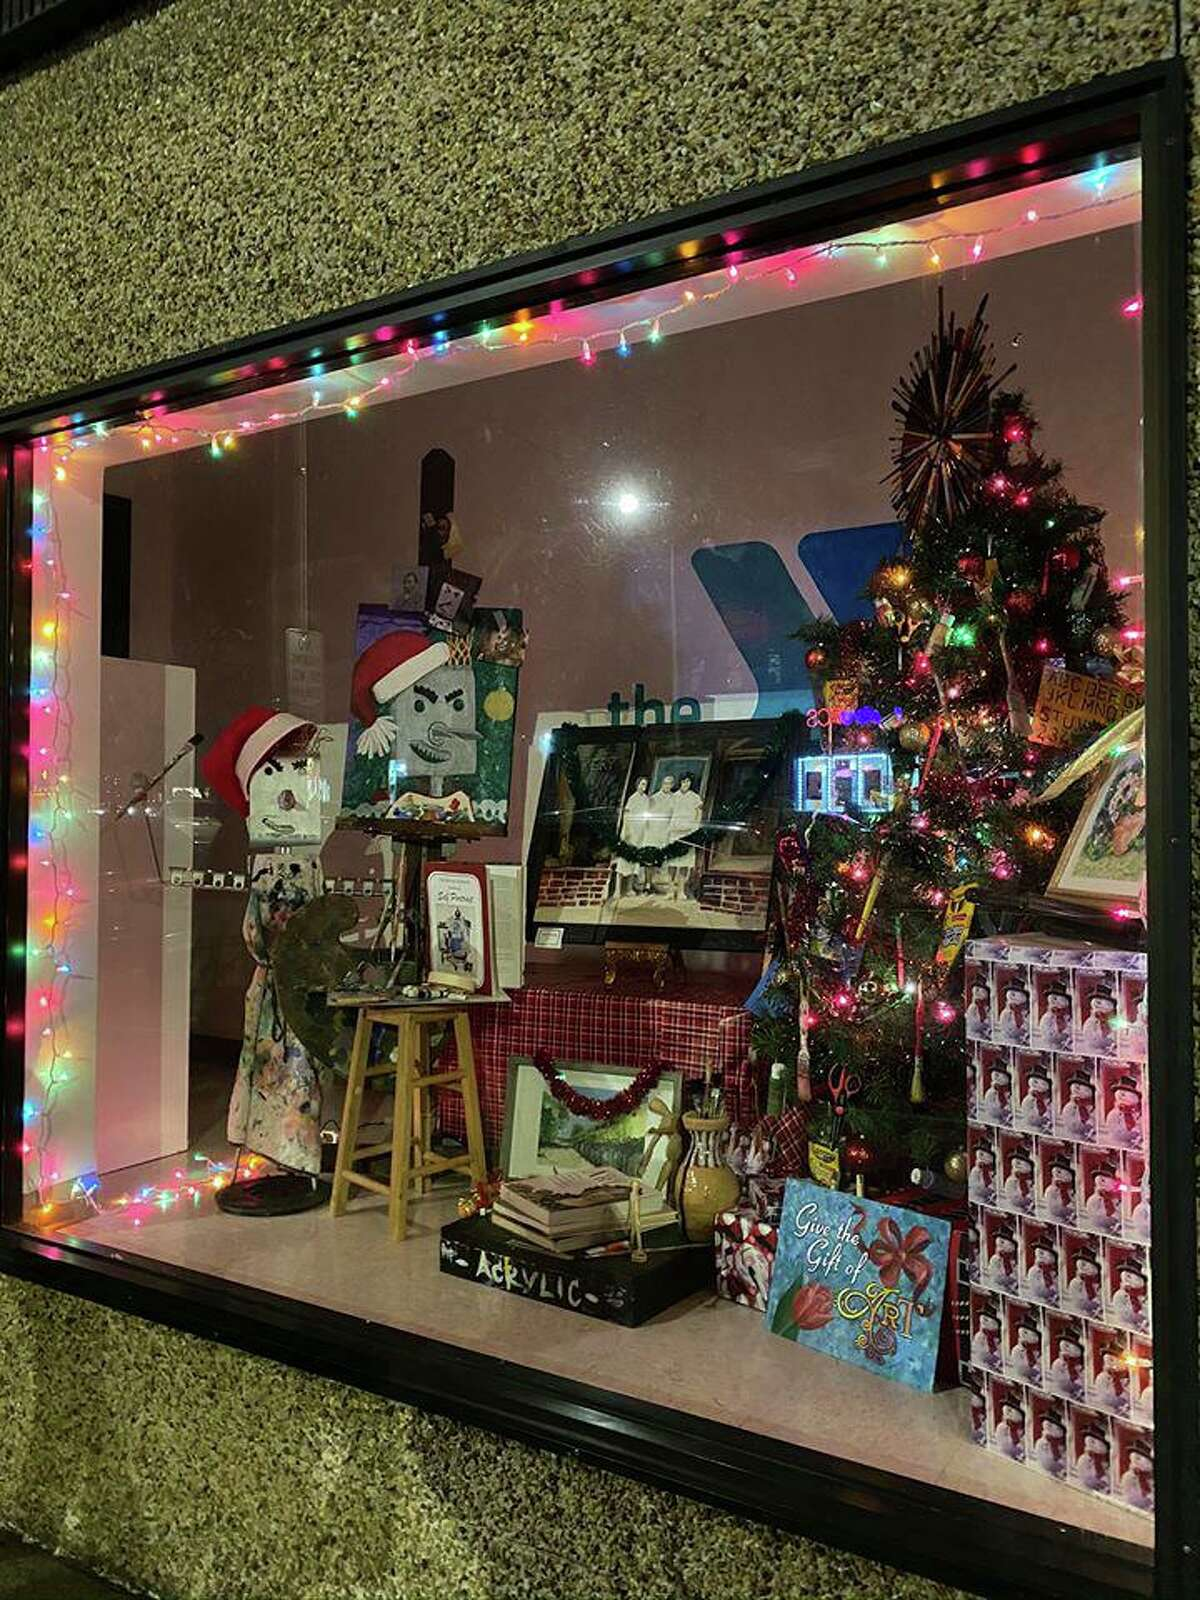 This storefront for the Regional YMCA's Escape to the Arts won the Best Overall award in the annual downtown Danbury holiday decorating contest sponsored by CityCenter Danbury.